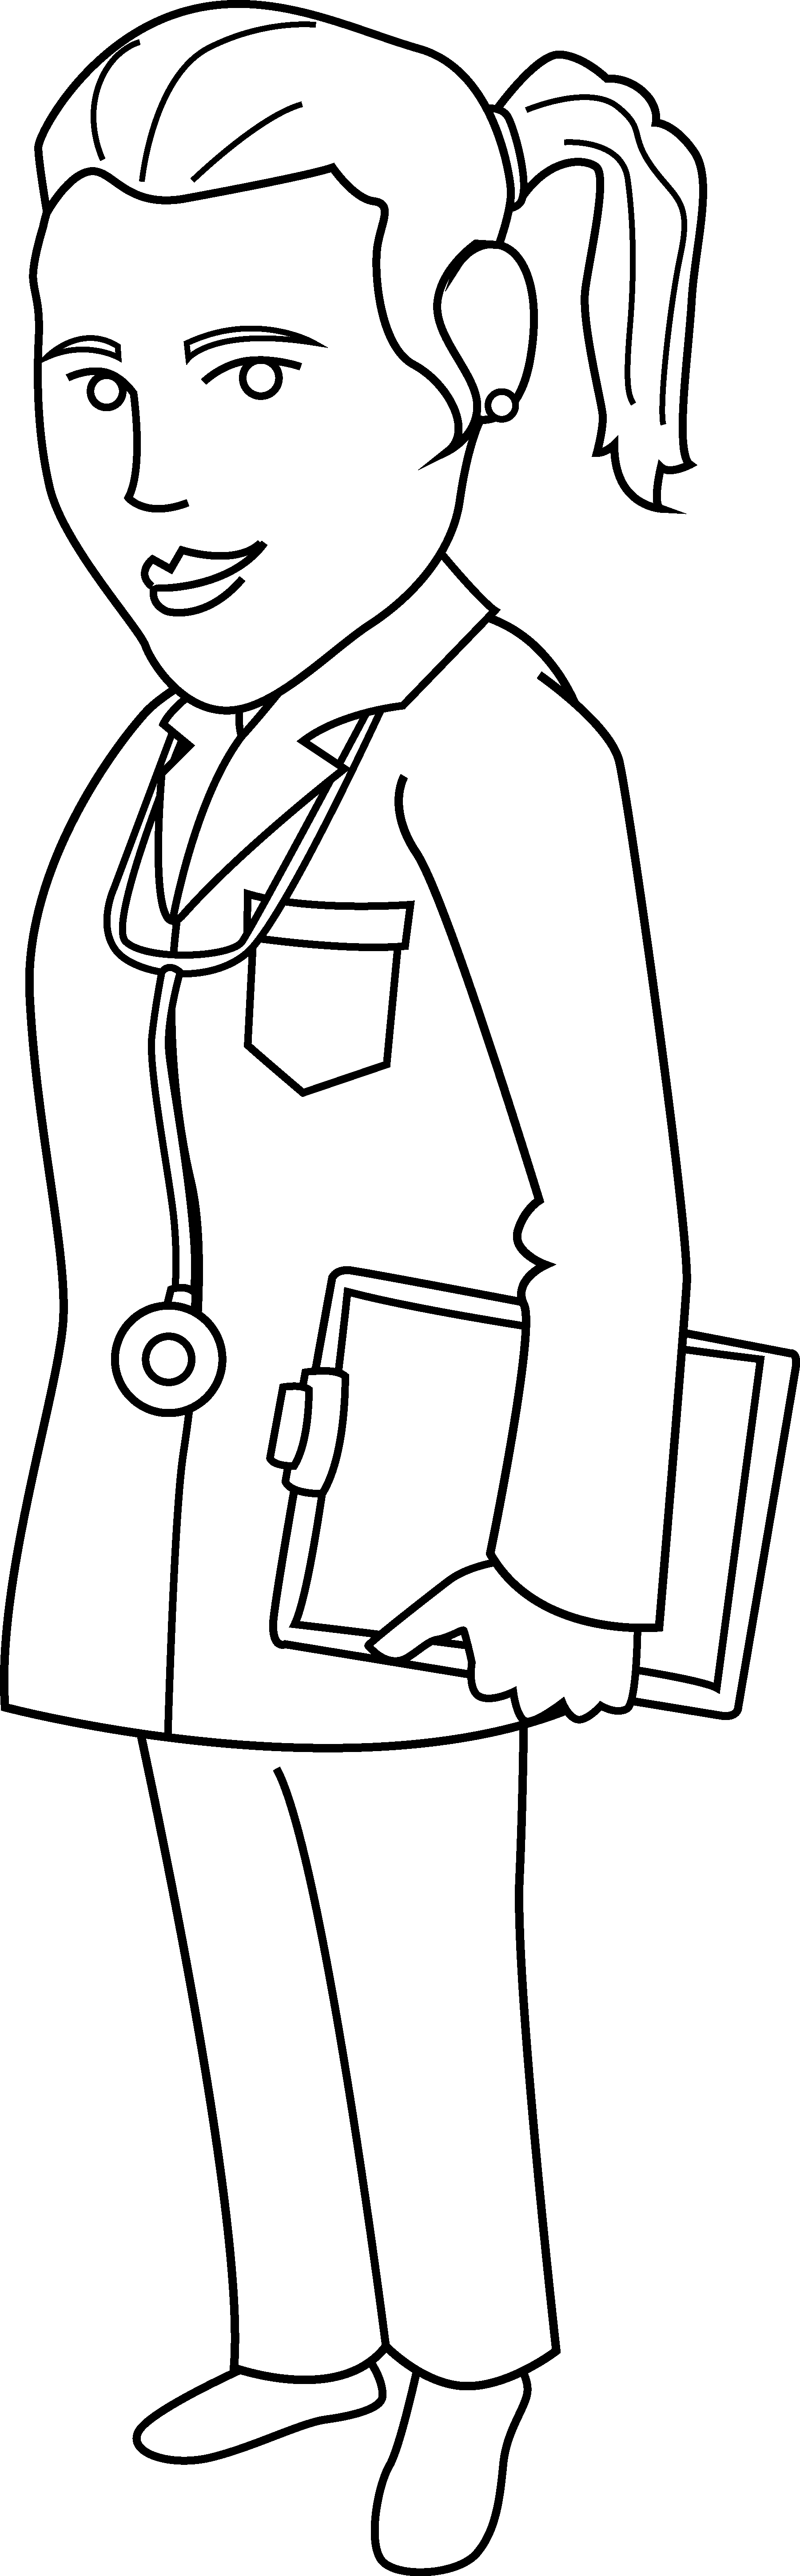 Coloring page free clip. Clipart doctor lady doctor